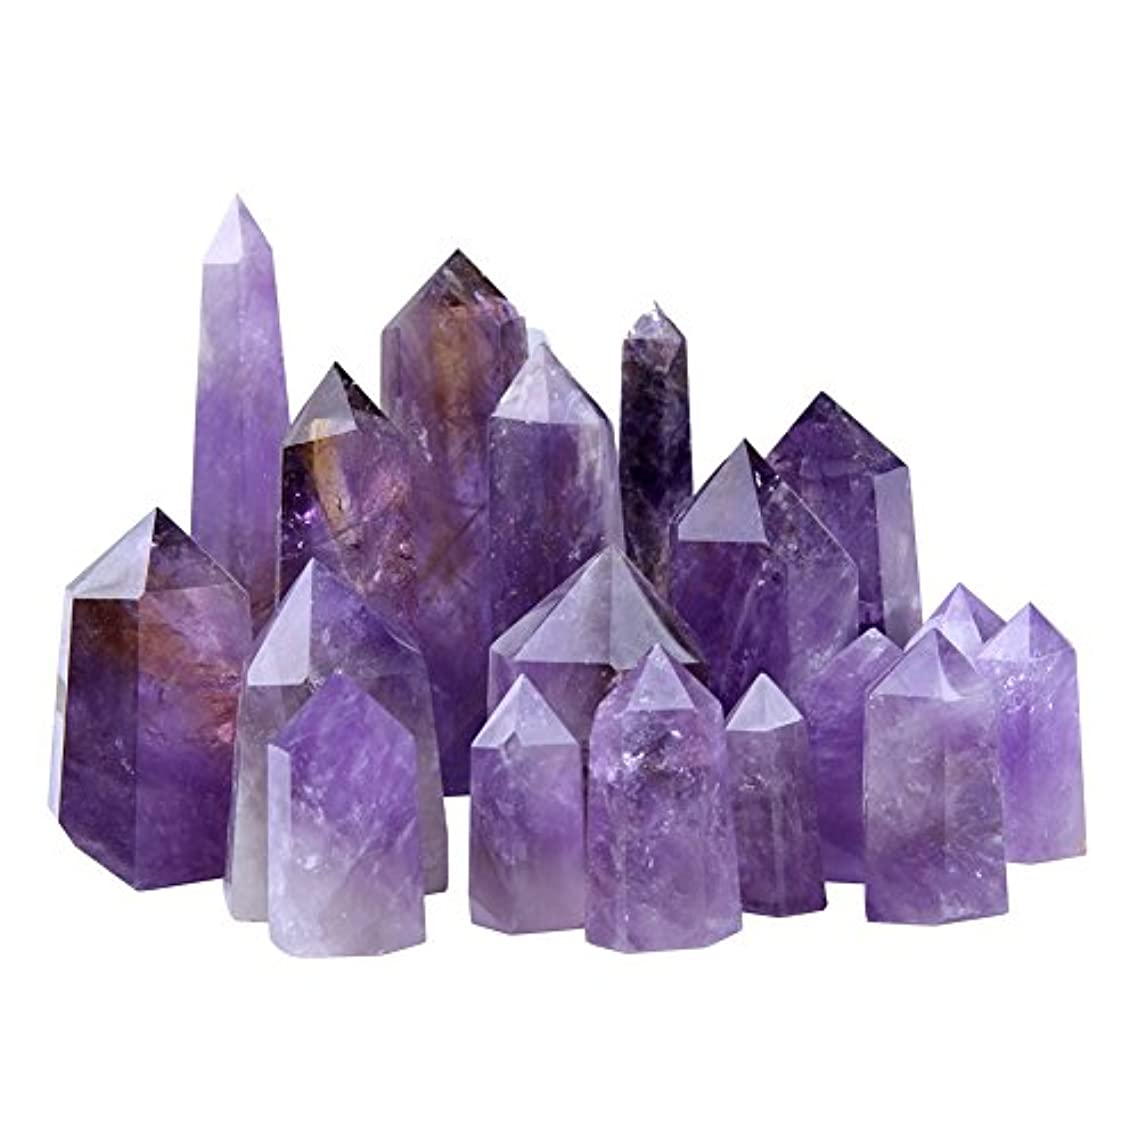 欲望注意電子レンジ(Amethyst 2) - Natural Purple Crystal Point 6 Faceted Amethyst Wand, 0.5kg for Healing, Reiki, Grids, Figurine...